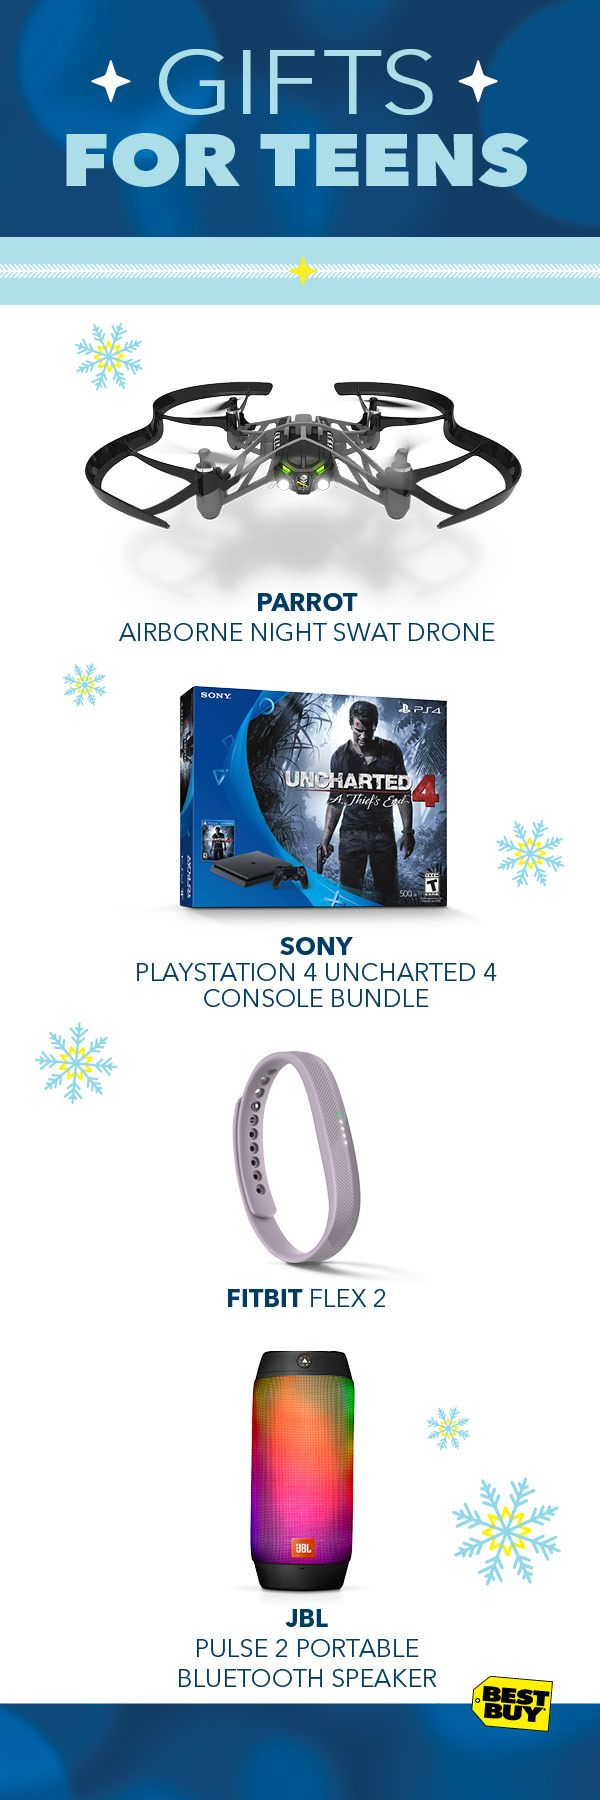 Need some can't-miss tech gifts for the teen on your list? Get their attention with the Parrot Airborne Night Swat Drone that lets you fly day or night. Or blow them away with the new, slimmer, ultra powerful Sony Playstation 4 Uncharted 4 Console Bundle. Count stairs, steps and track your fitness with the Fitbit Flex 2. Or experience the bonerattling bass and awesome light show of the JBL Pulse 2 Bluetooth speaker. Add free shipping, and it's teen tech holiday gifting made easy.